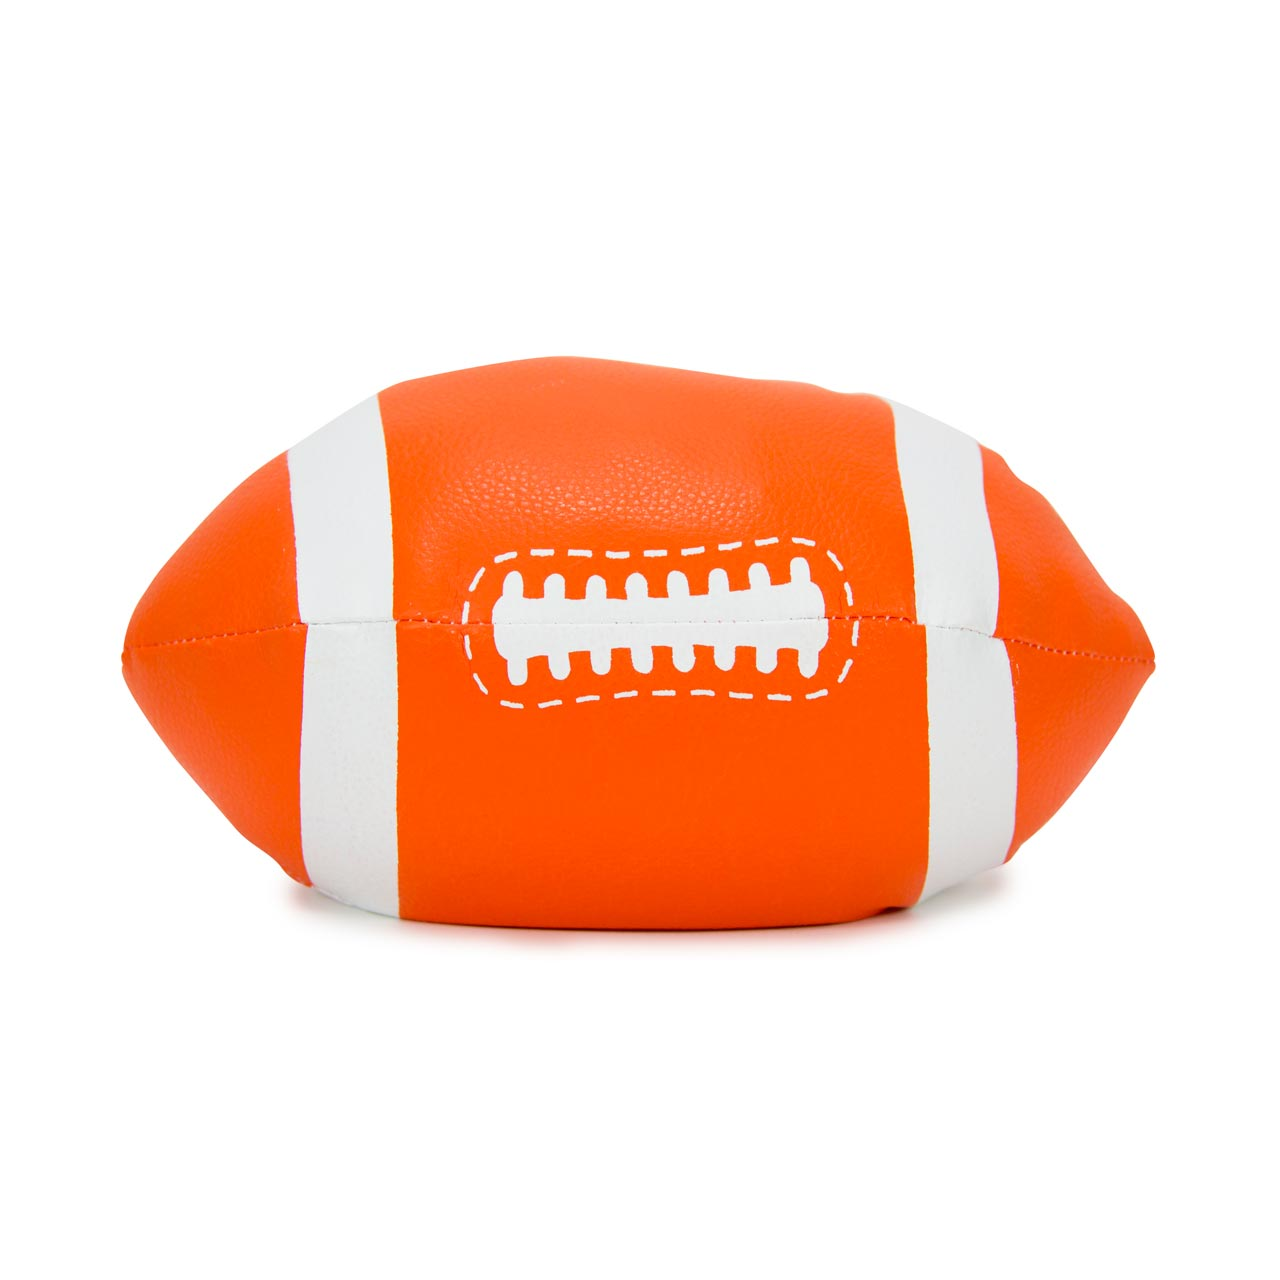 Annabel Trends Football Rugby Ball Doorstop in orange | The Design Gift Shop